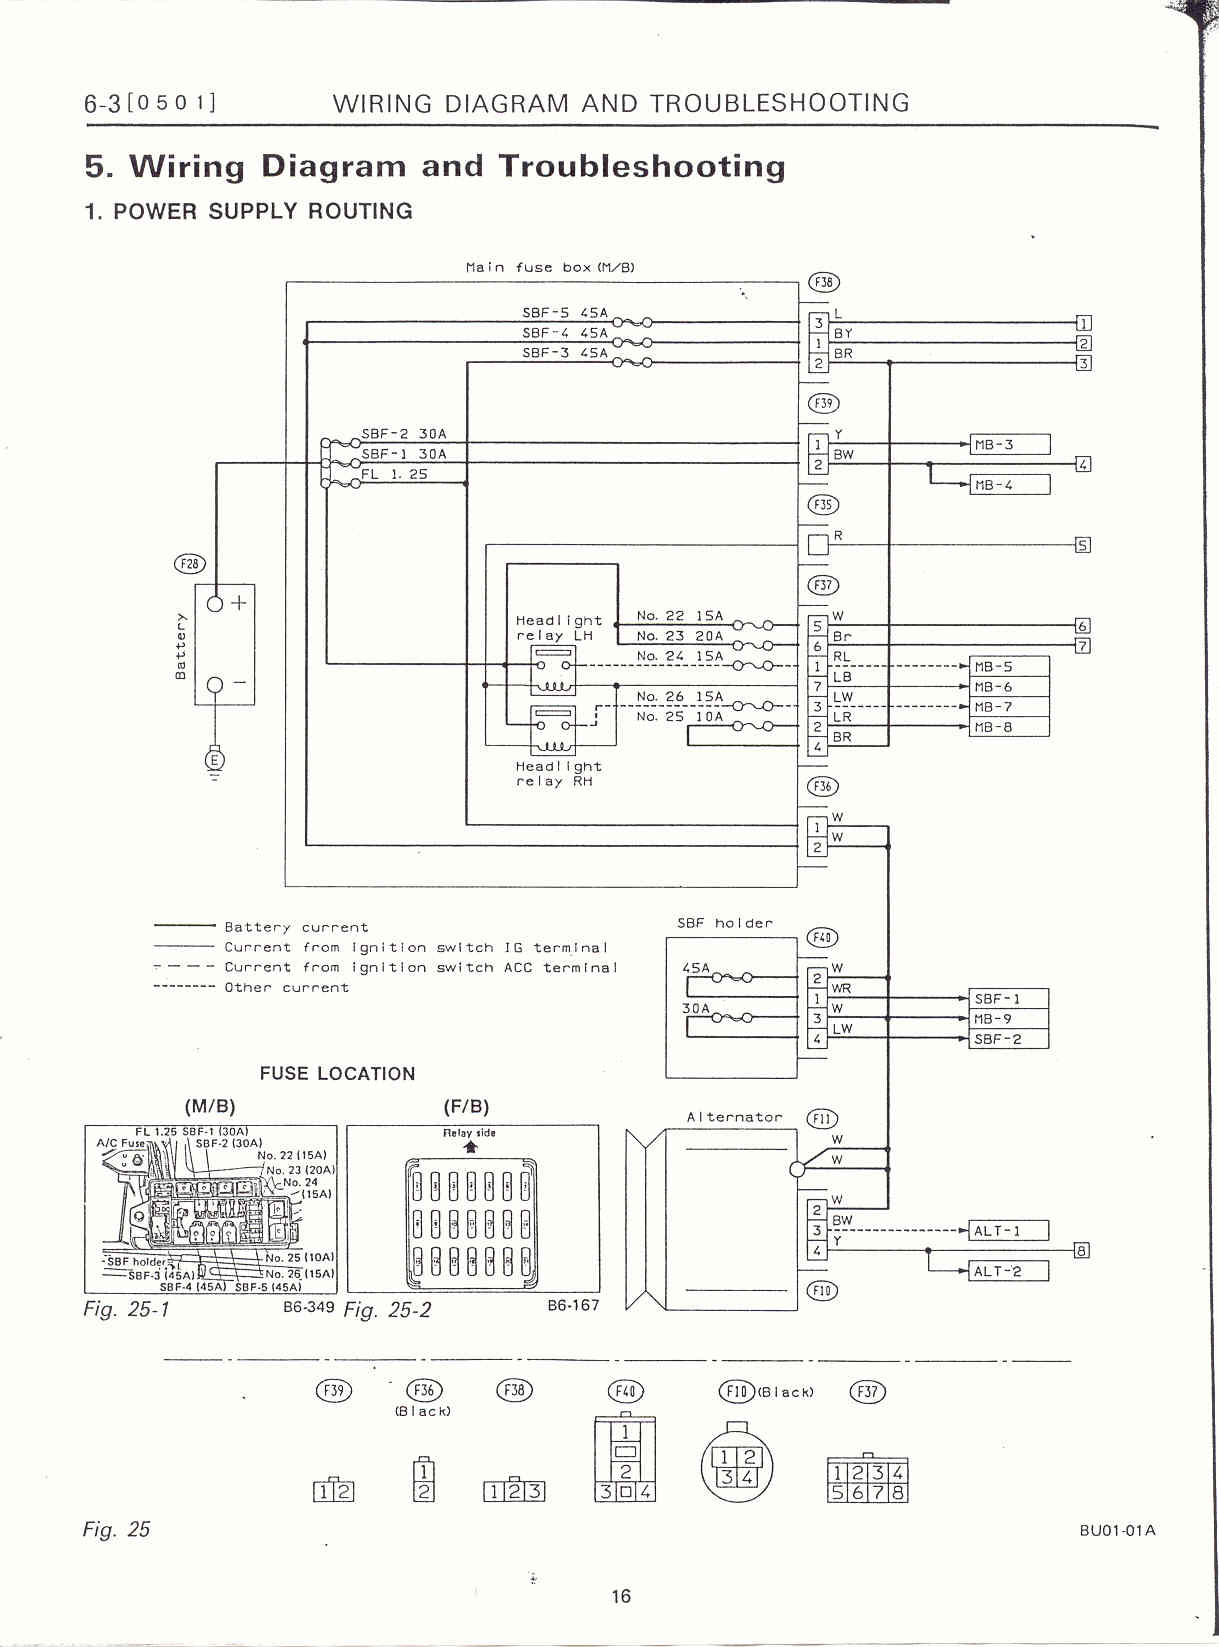 Subaru Legacy Transmission Wiring Diagram Circuit Schematic 2003 Acura Surrealmirage Swap Electrical Info Notes Repair Information